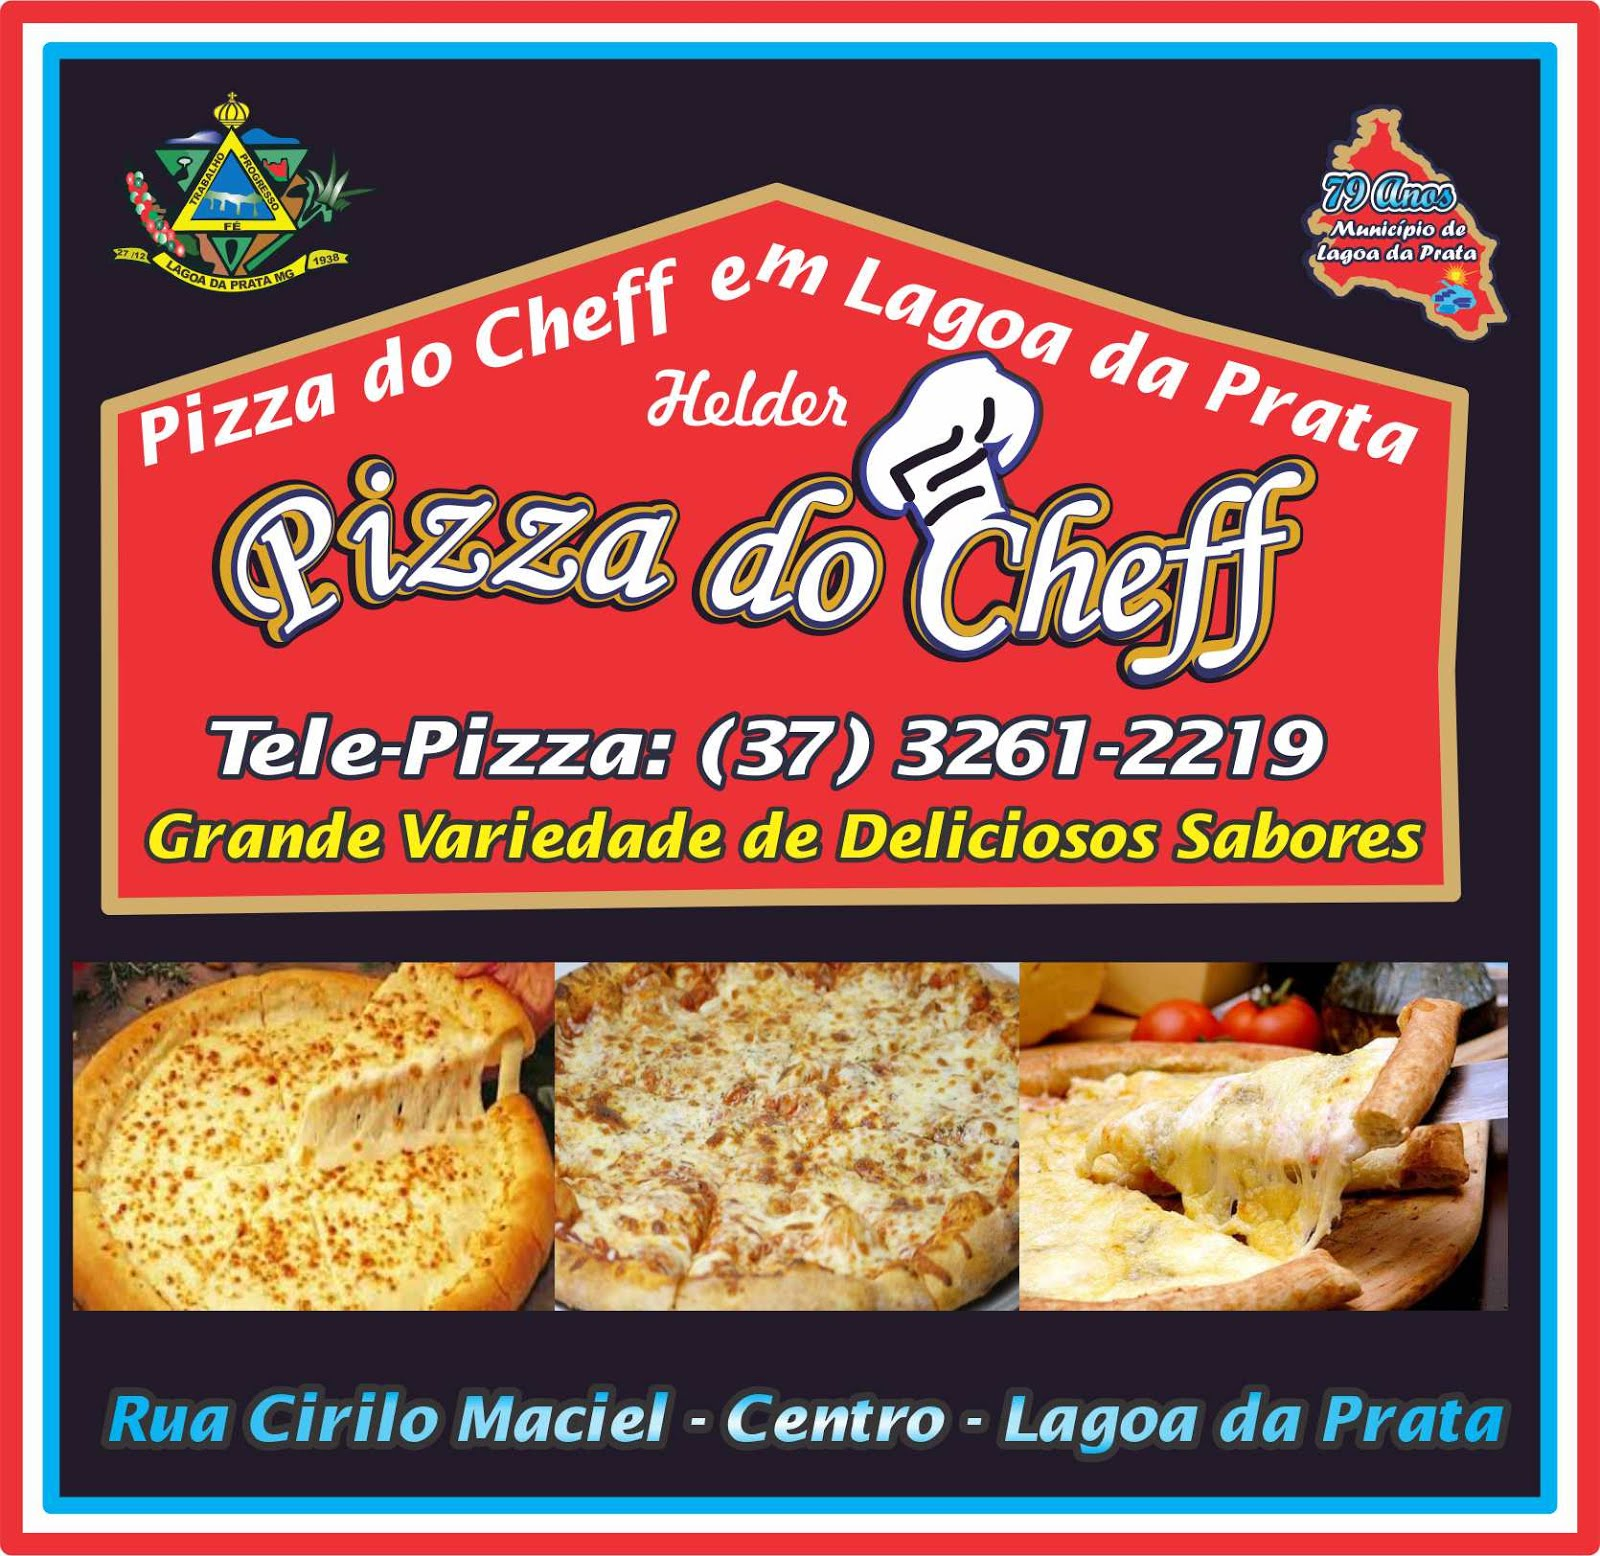 Pizzaria Pizza do Cheff